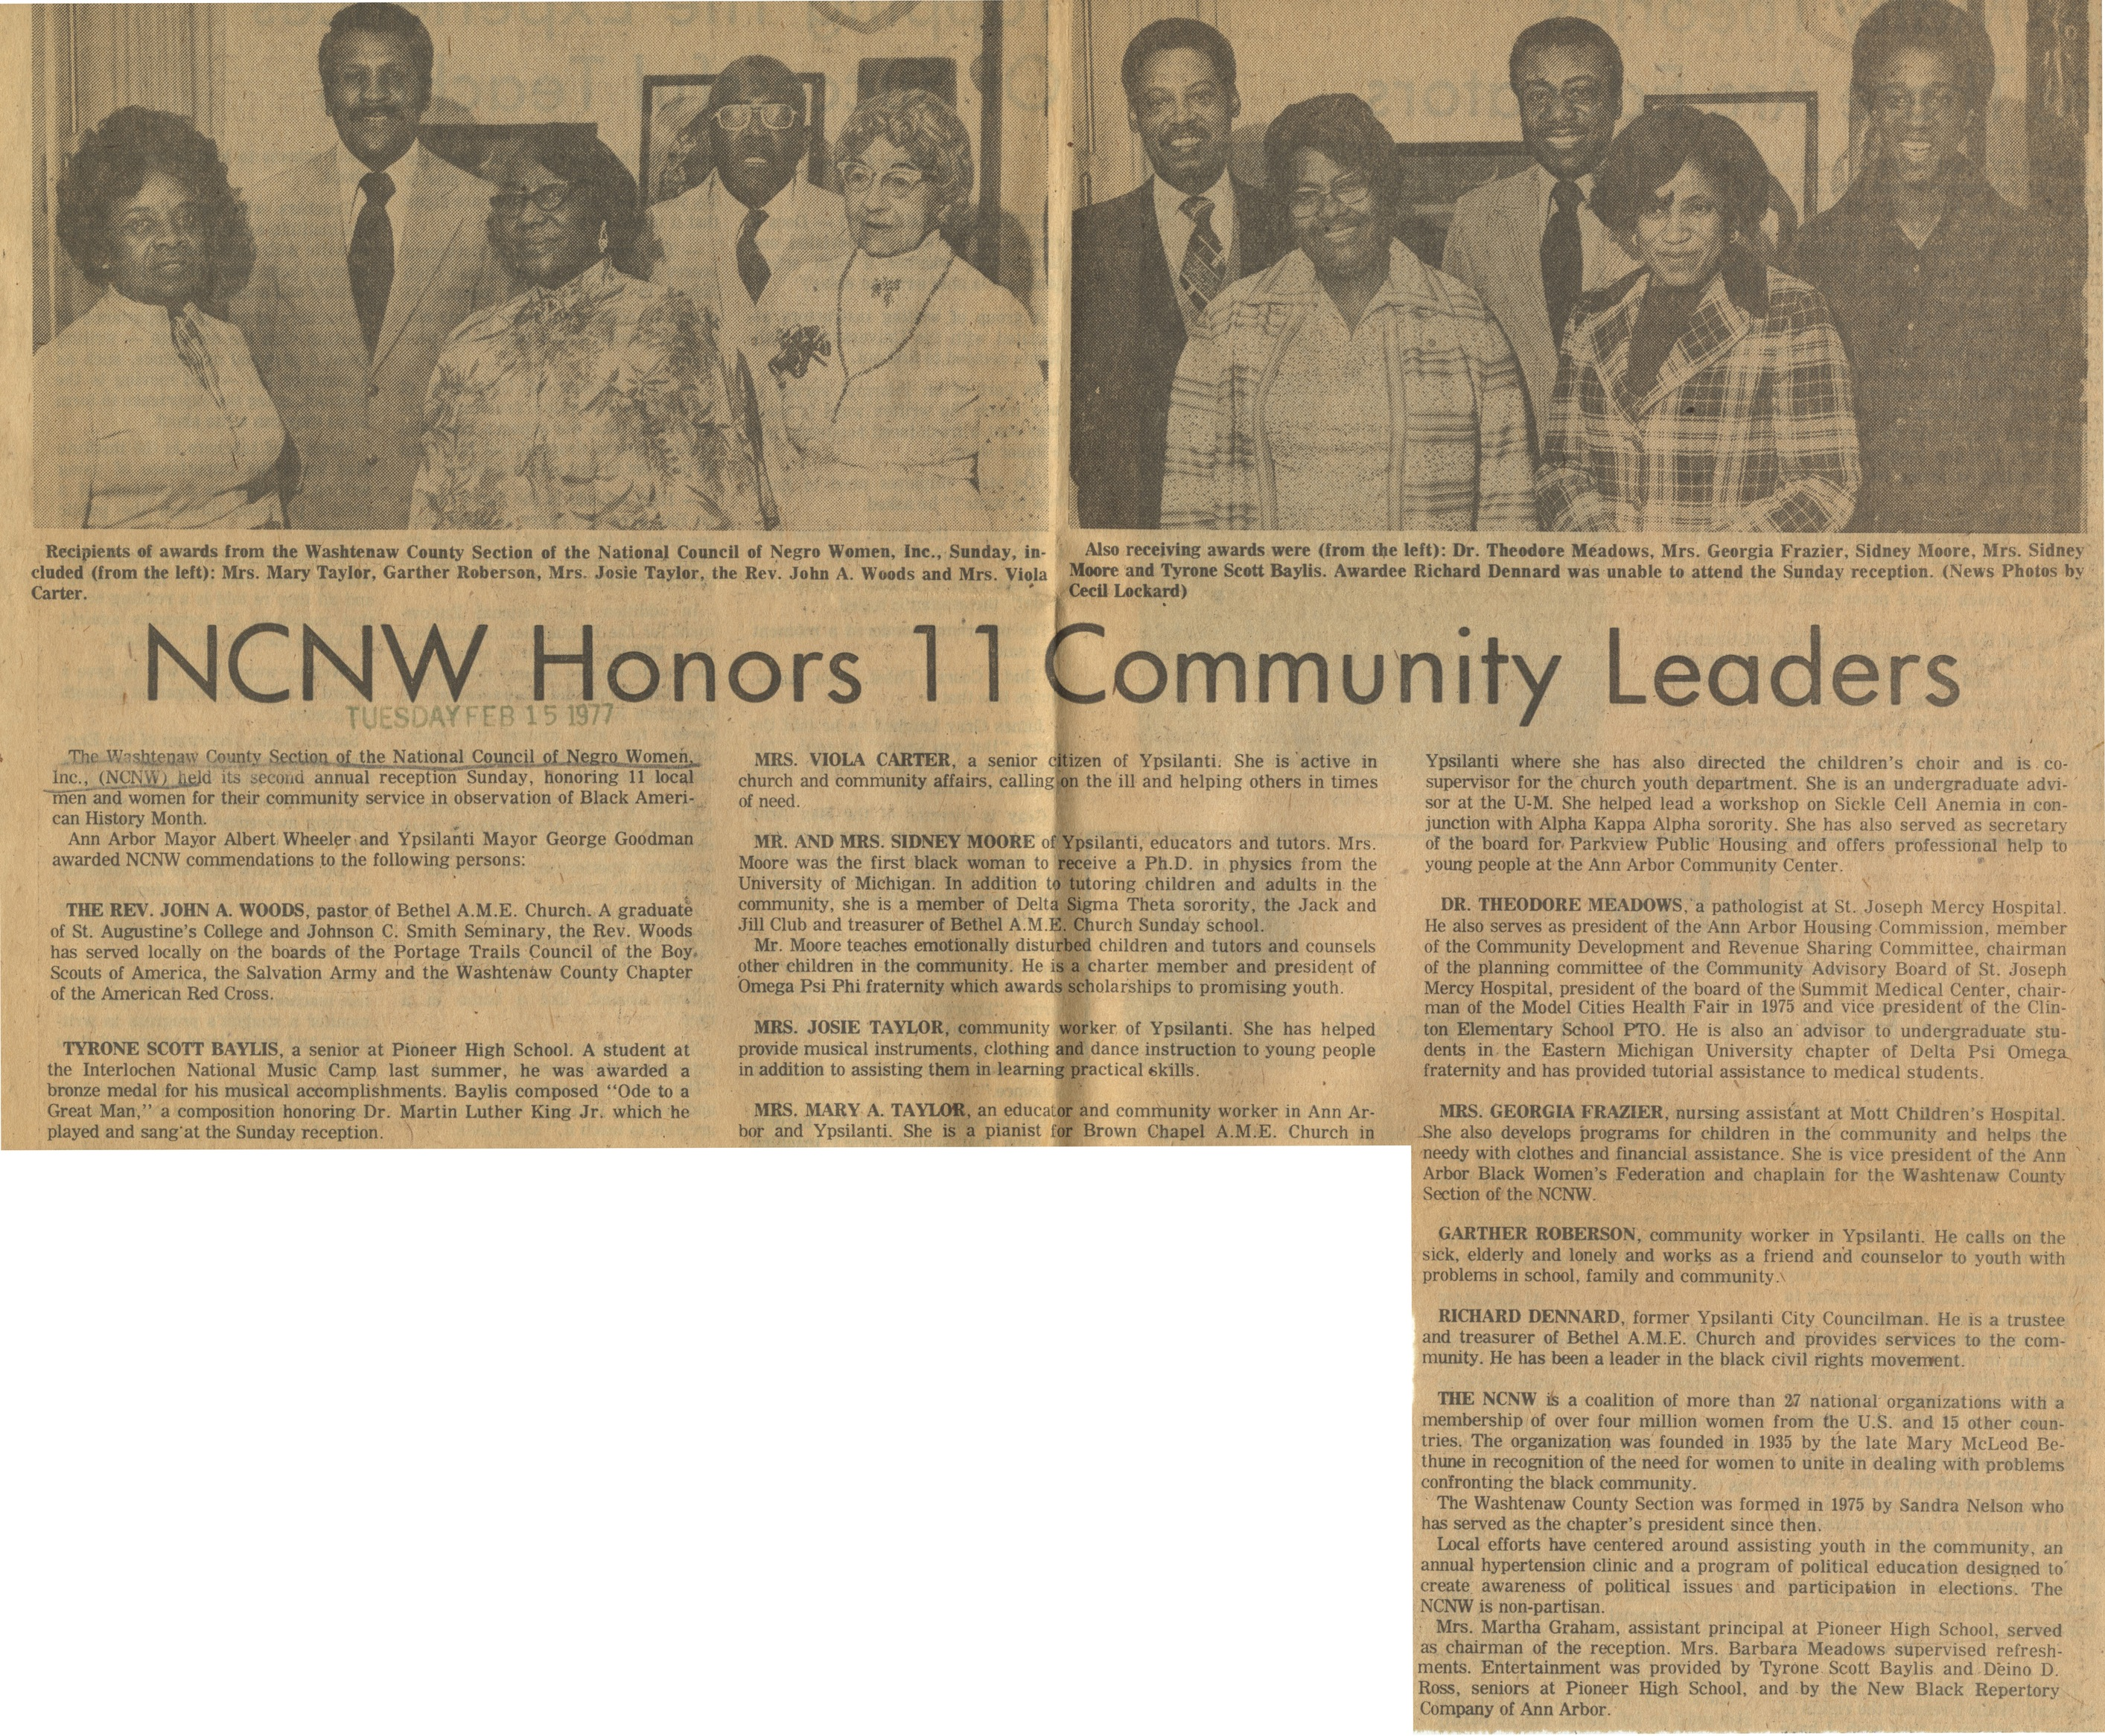 NCNW Honors 11 Community Leaders image